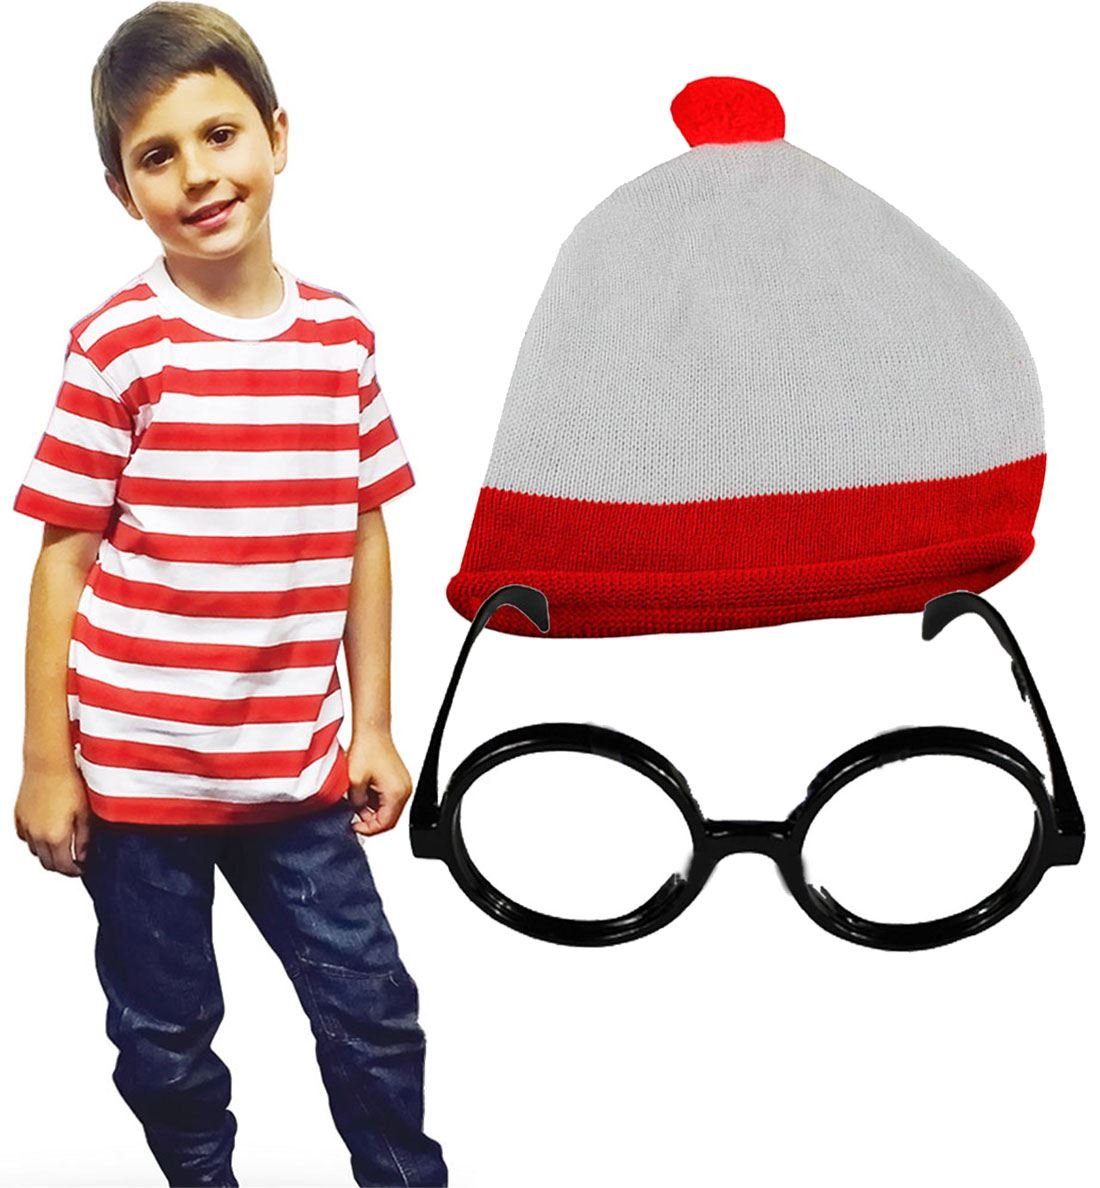 MA ONLINE Kids Knitted Hat Glasses Red and White T-Shirt Childrens Fancy Dress Accessory 7-8 Years